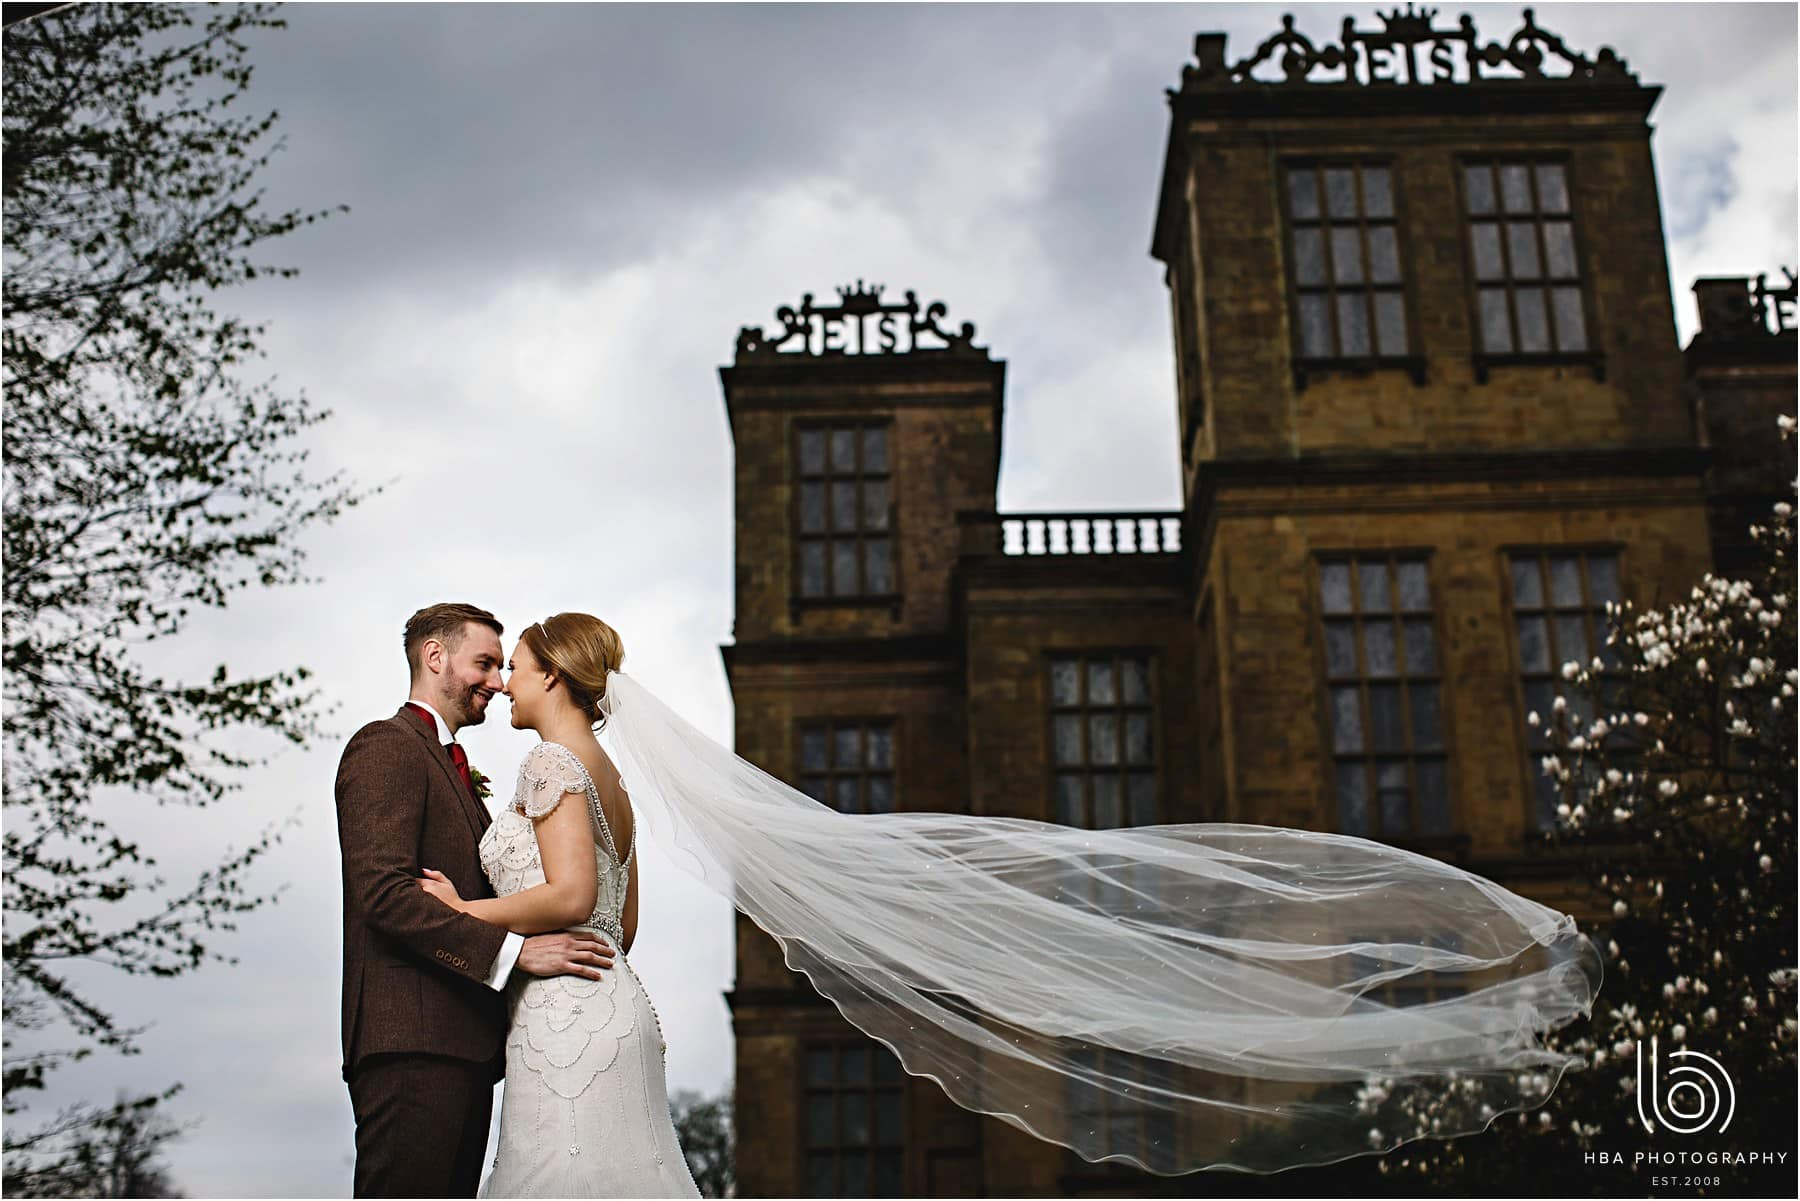 The bride and groom stood outside Hardwick Hall